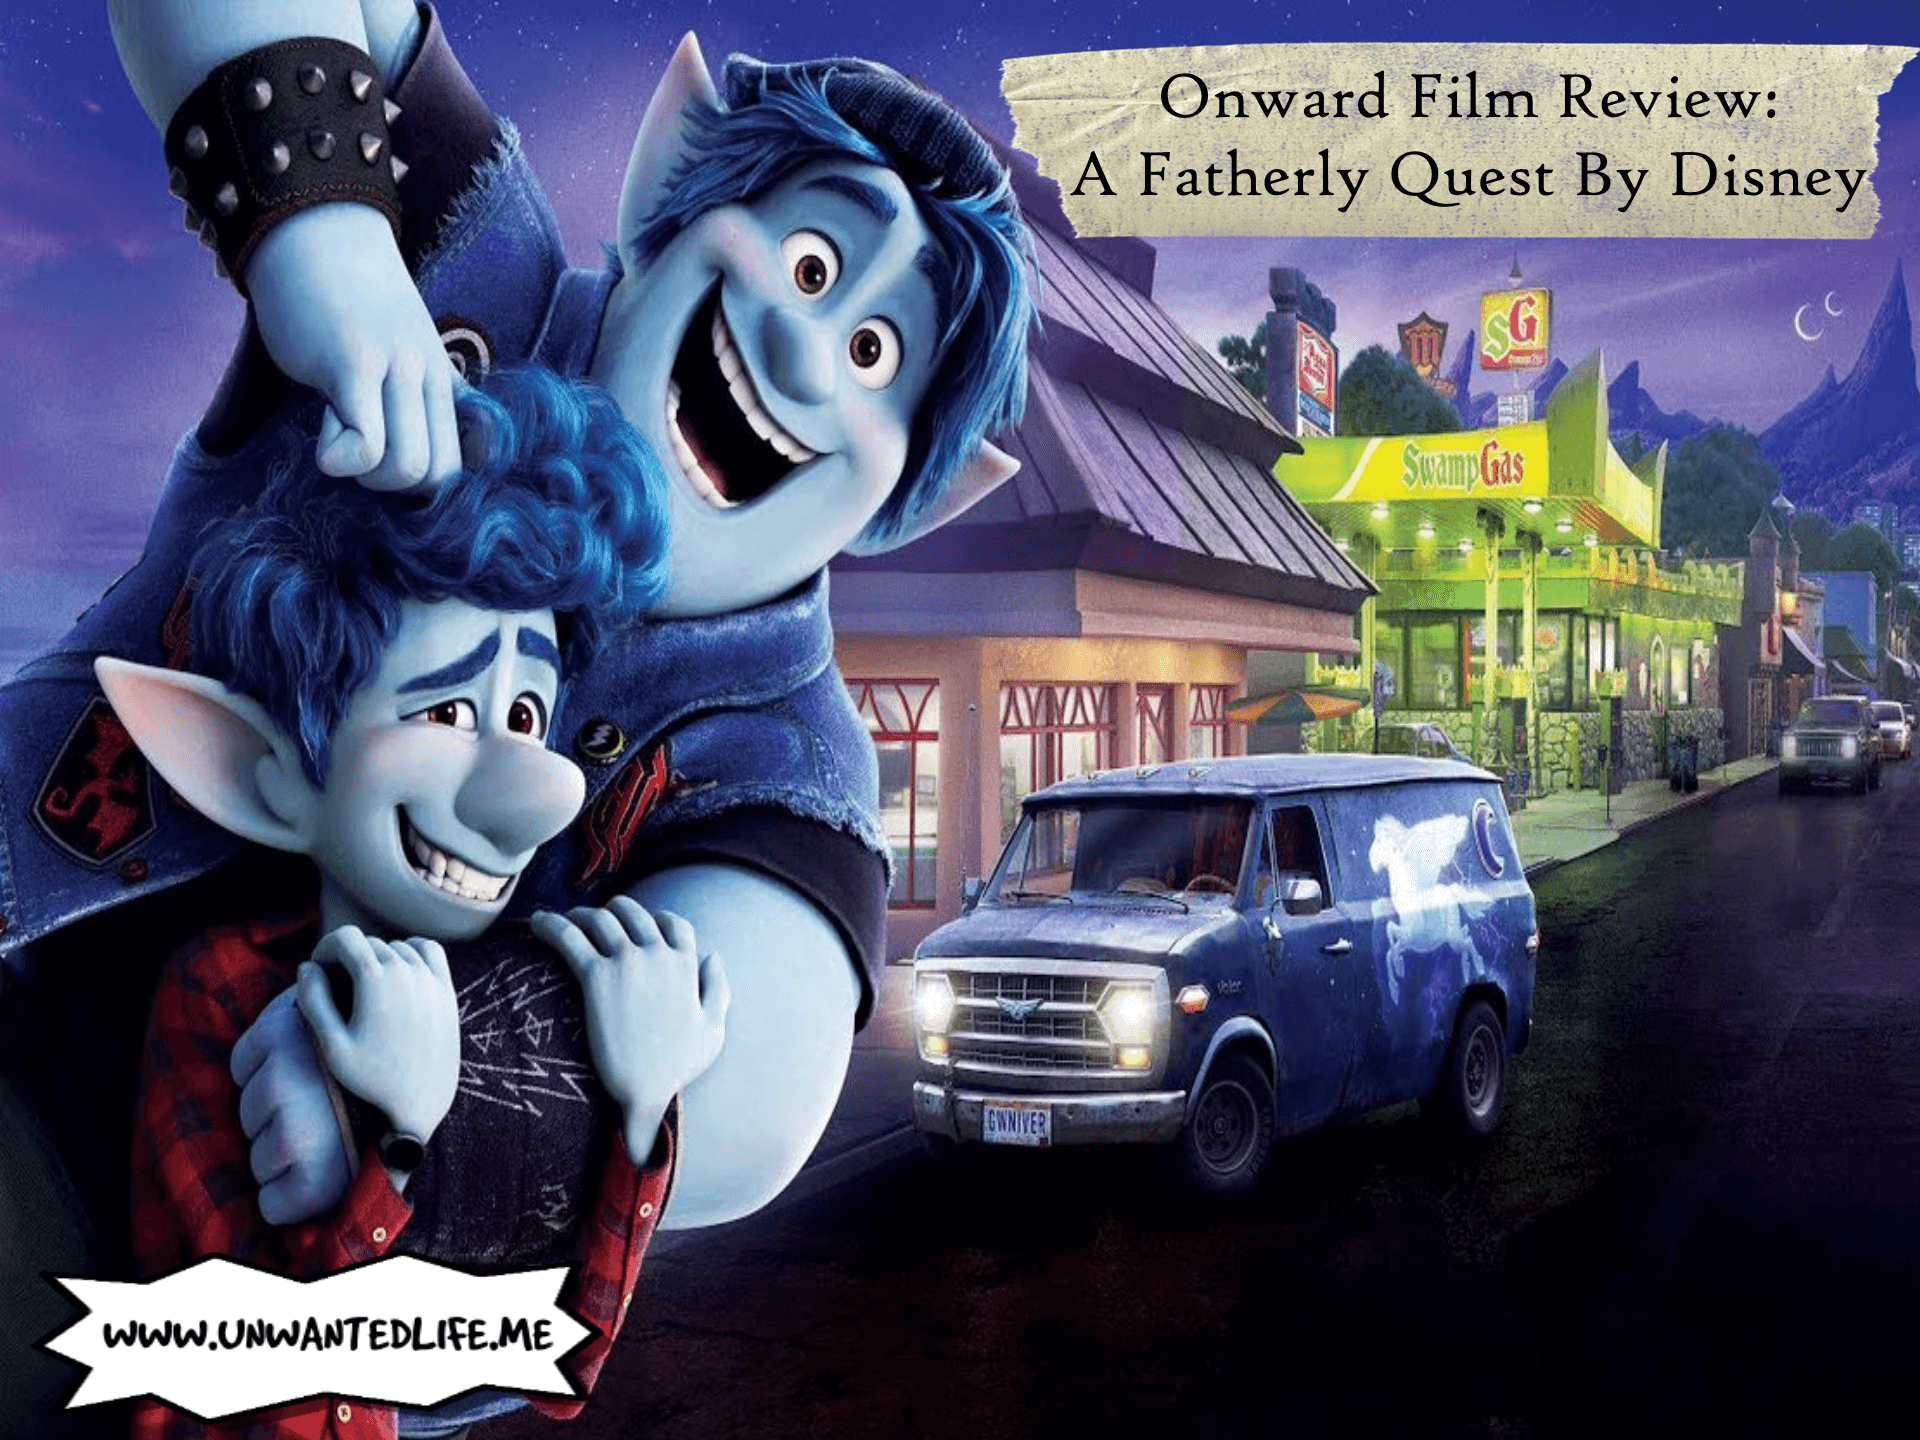 A promo picture from the Disney film 'Onward' to represent the topic of the article - Onward Film Review: A Fatherly Quest By Disney